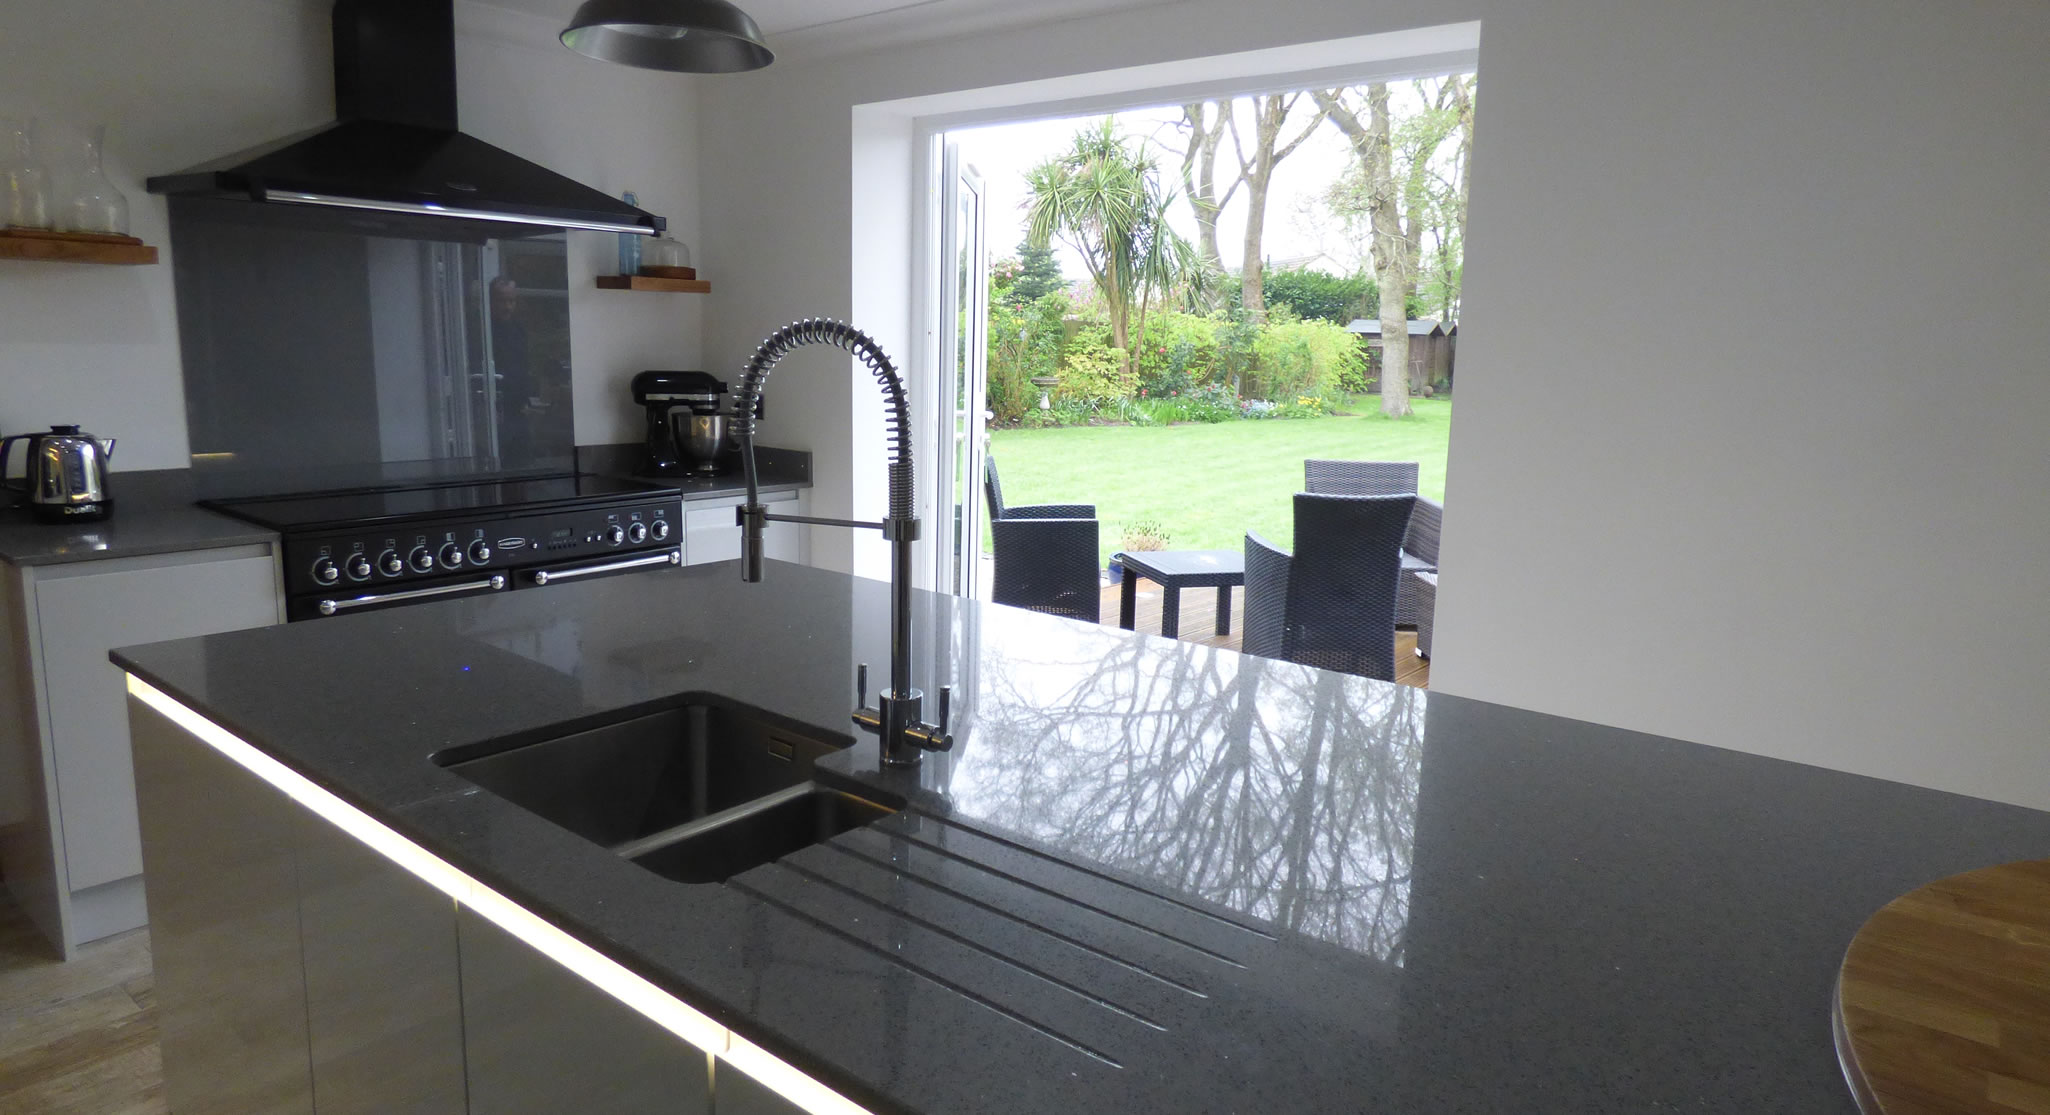 Verwood Kitchens and Bathrooms - Kitchen design and installation